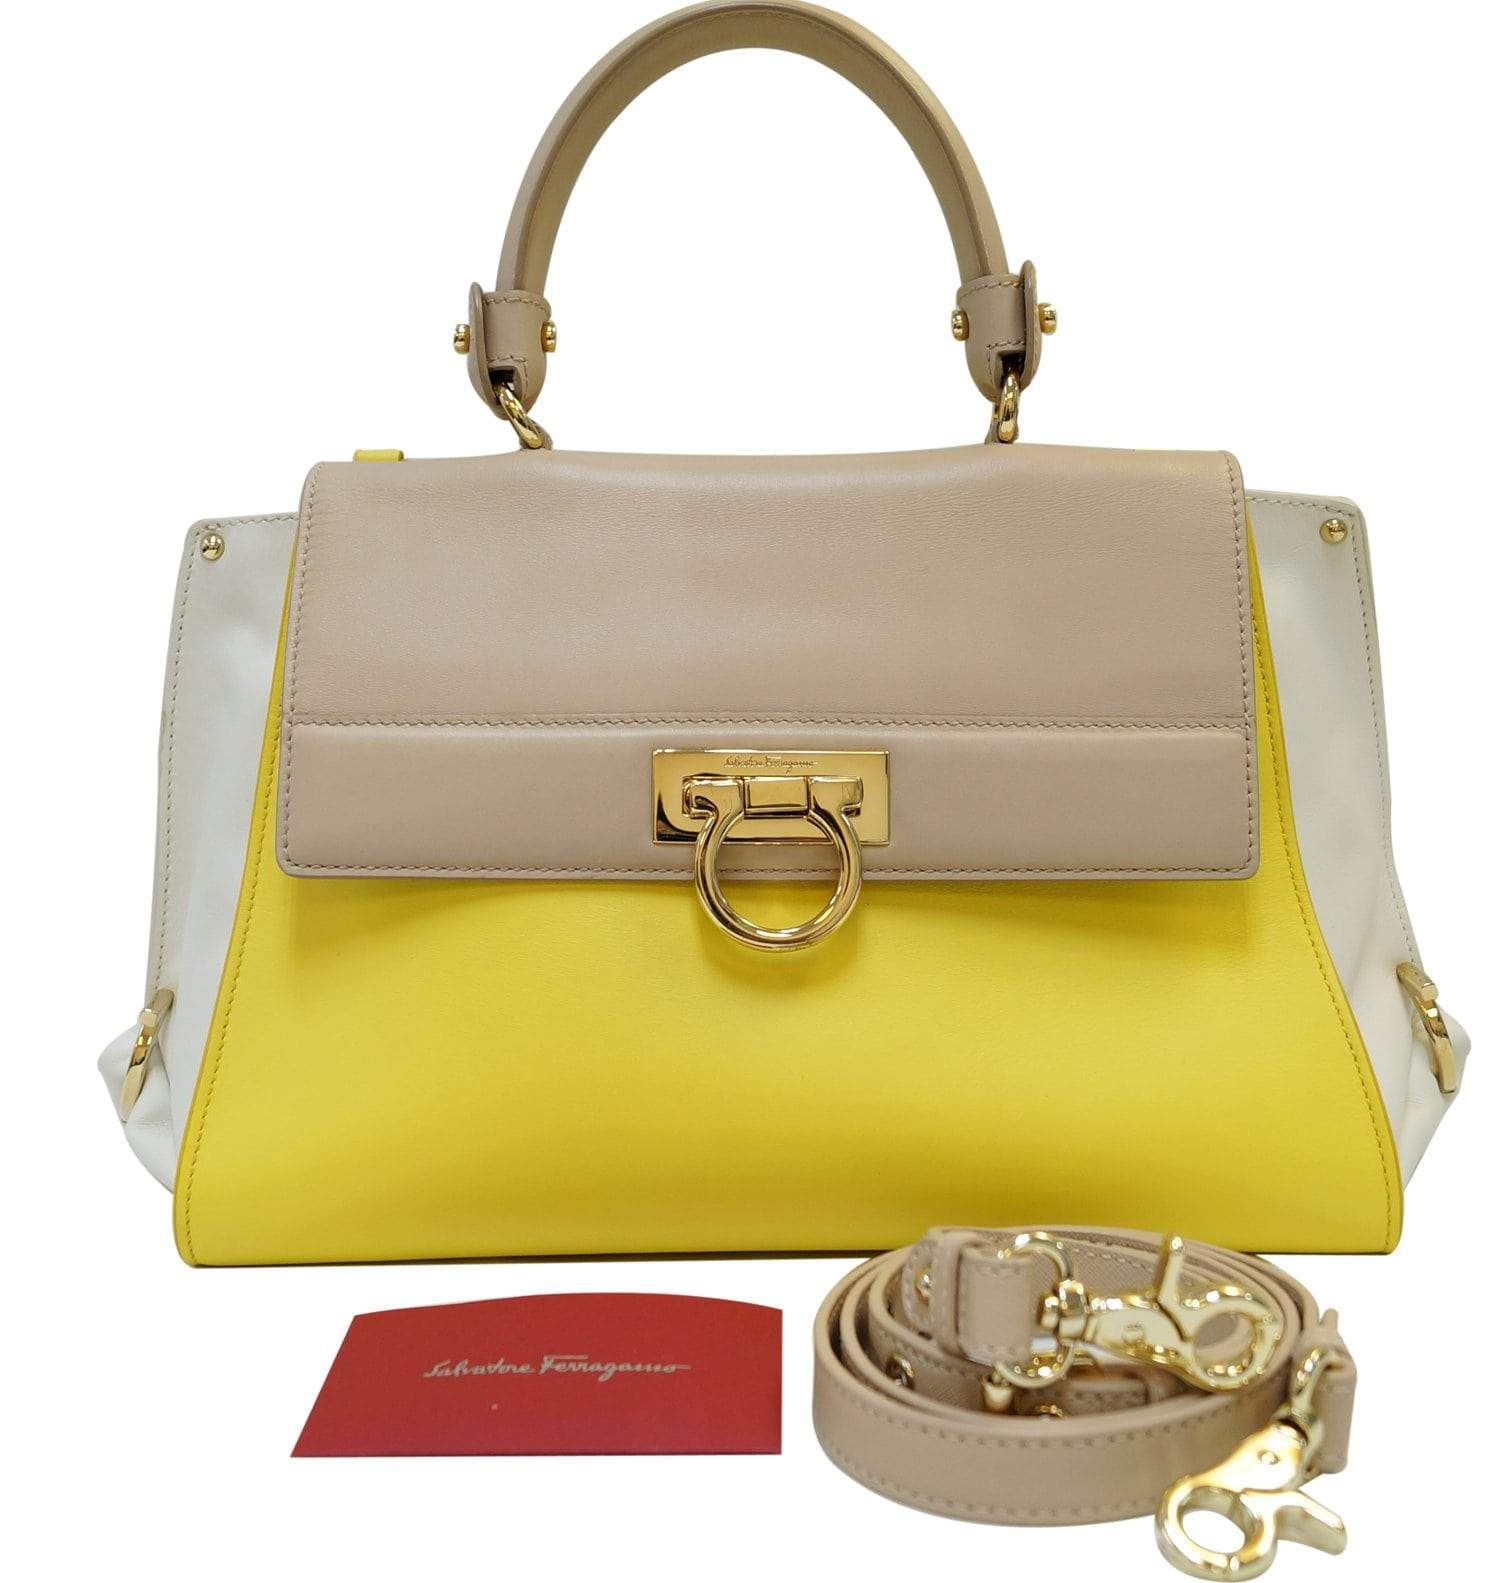 Salvatore Ferragamo Large Sofia Top Handle Bag - Final Call 7642ac70e4